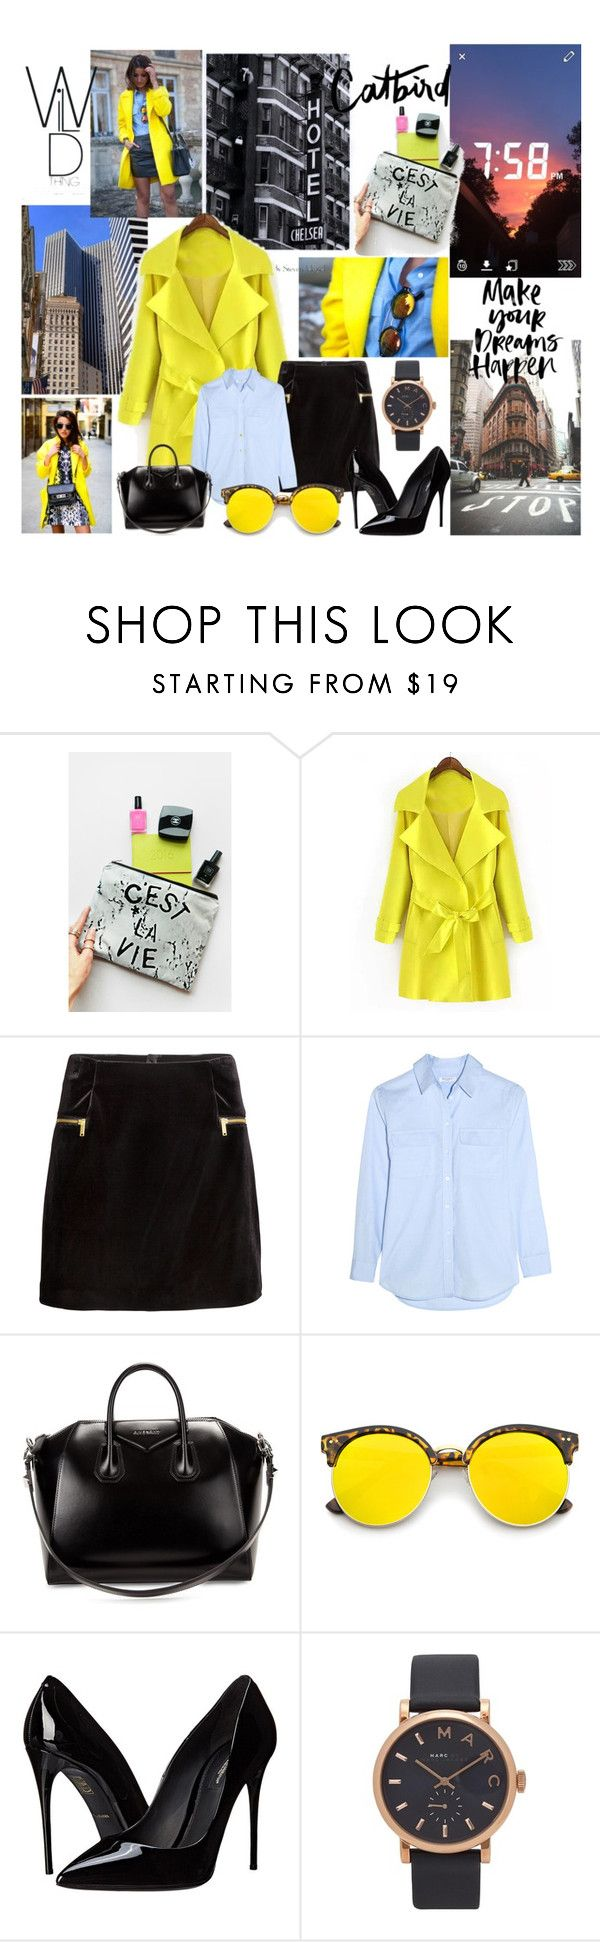 """""""yellow power"""" by camilazeballo on Polyvore featuring moda, Piaget, Rianna Phillips, H&M, Equipment, Givenchy, Revo, Dolce&Gabbana y Marc by Marc Jacobs"""